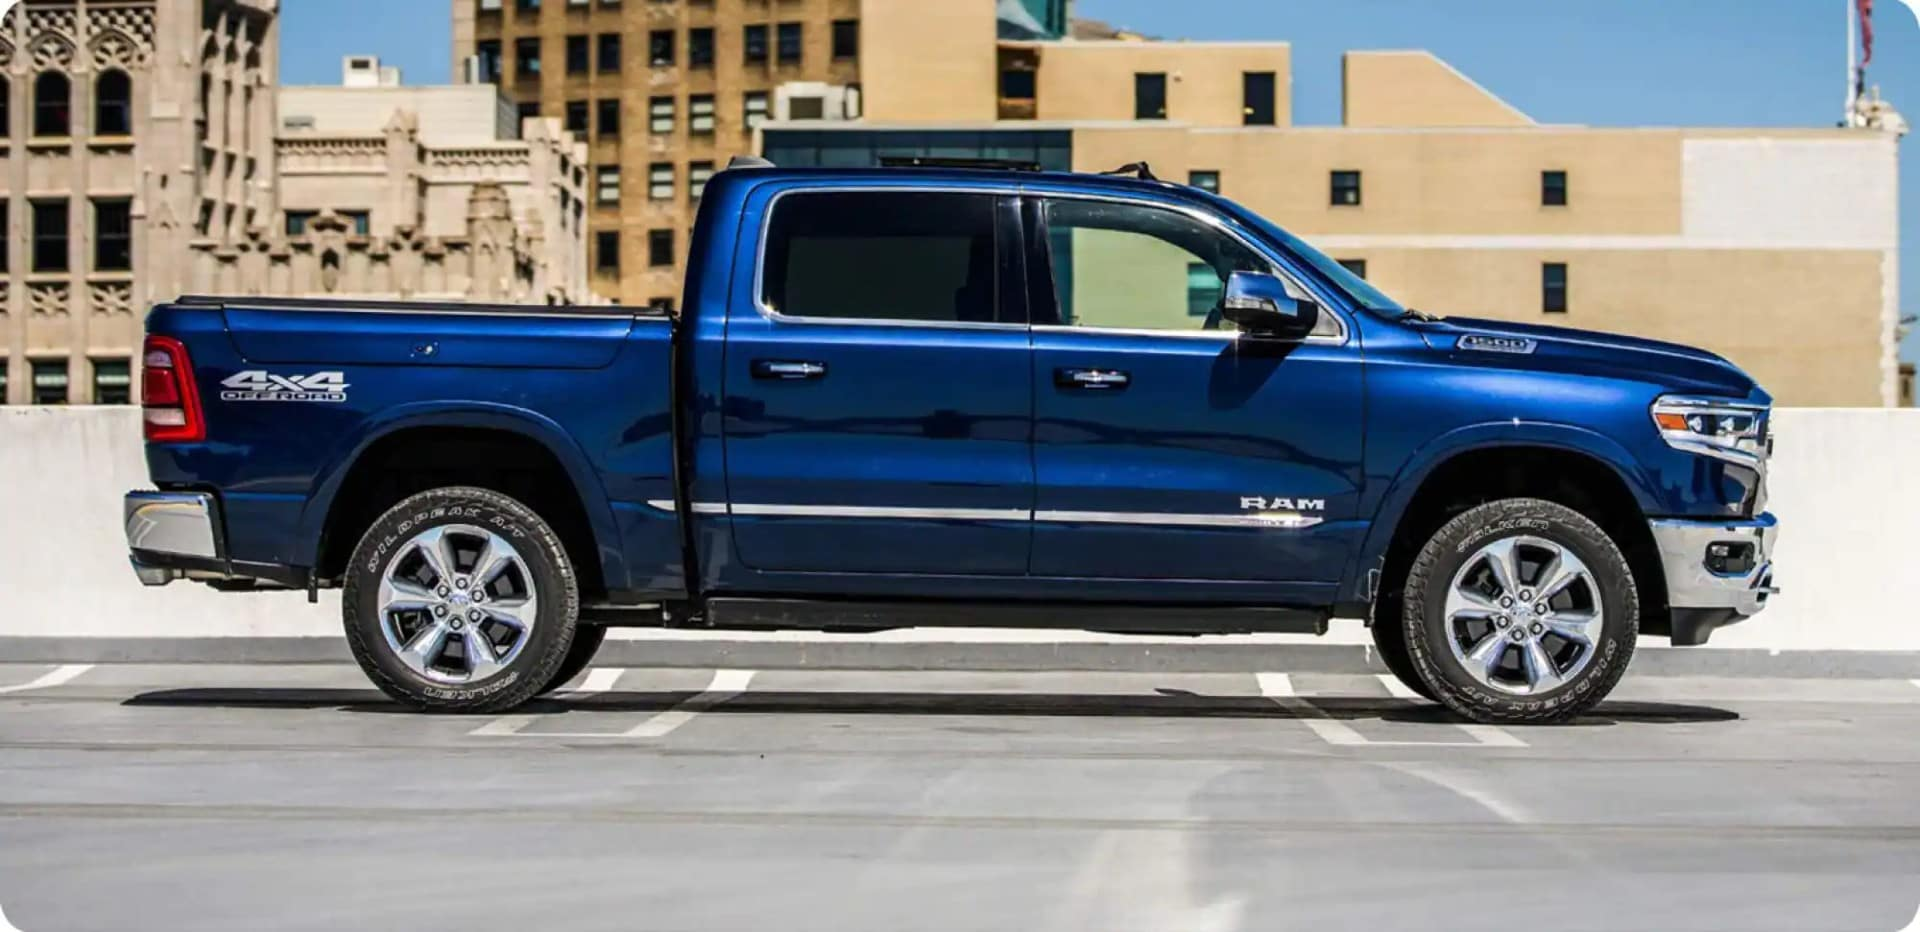 picture of dodge ram 1500 blue exterior for Sale in Hooksett New Hampshire